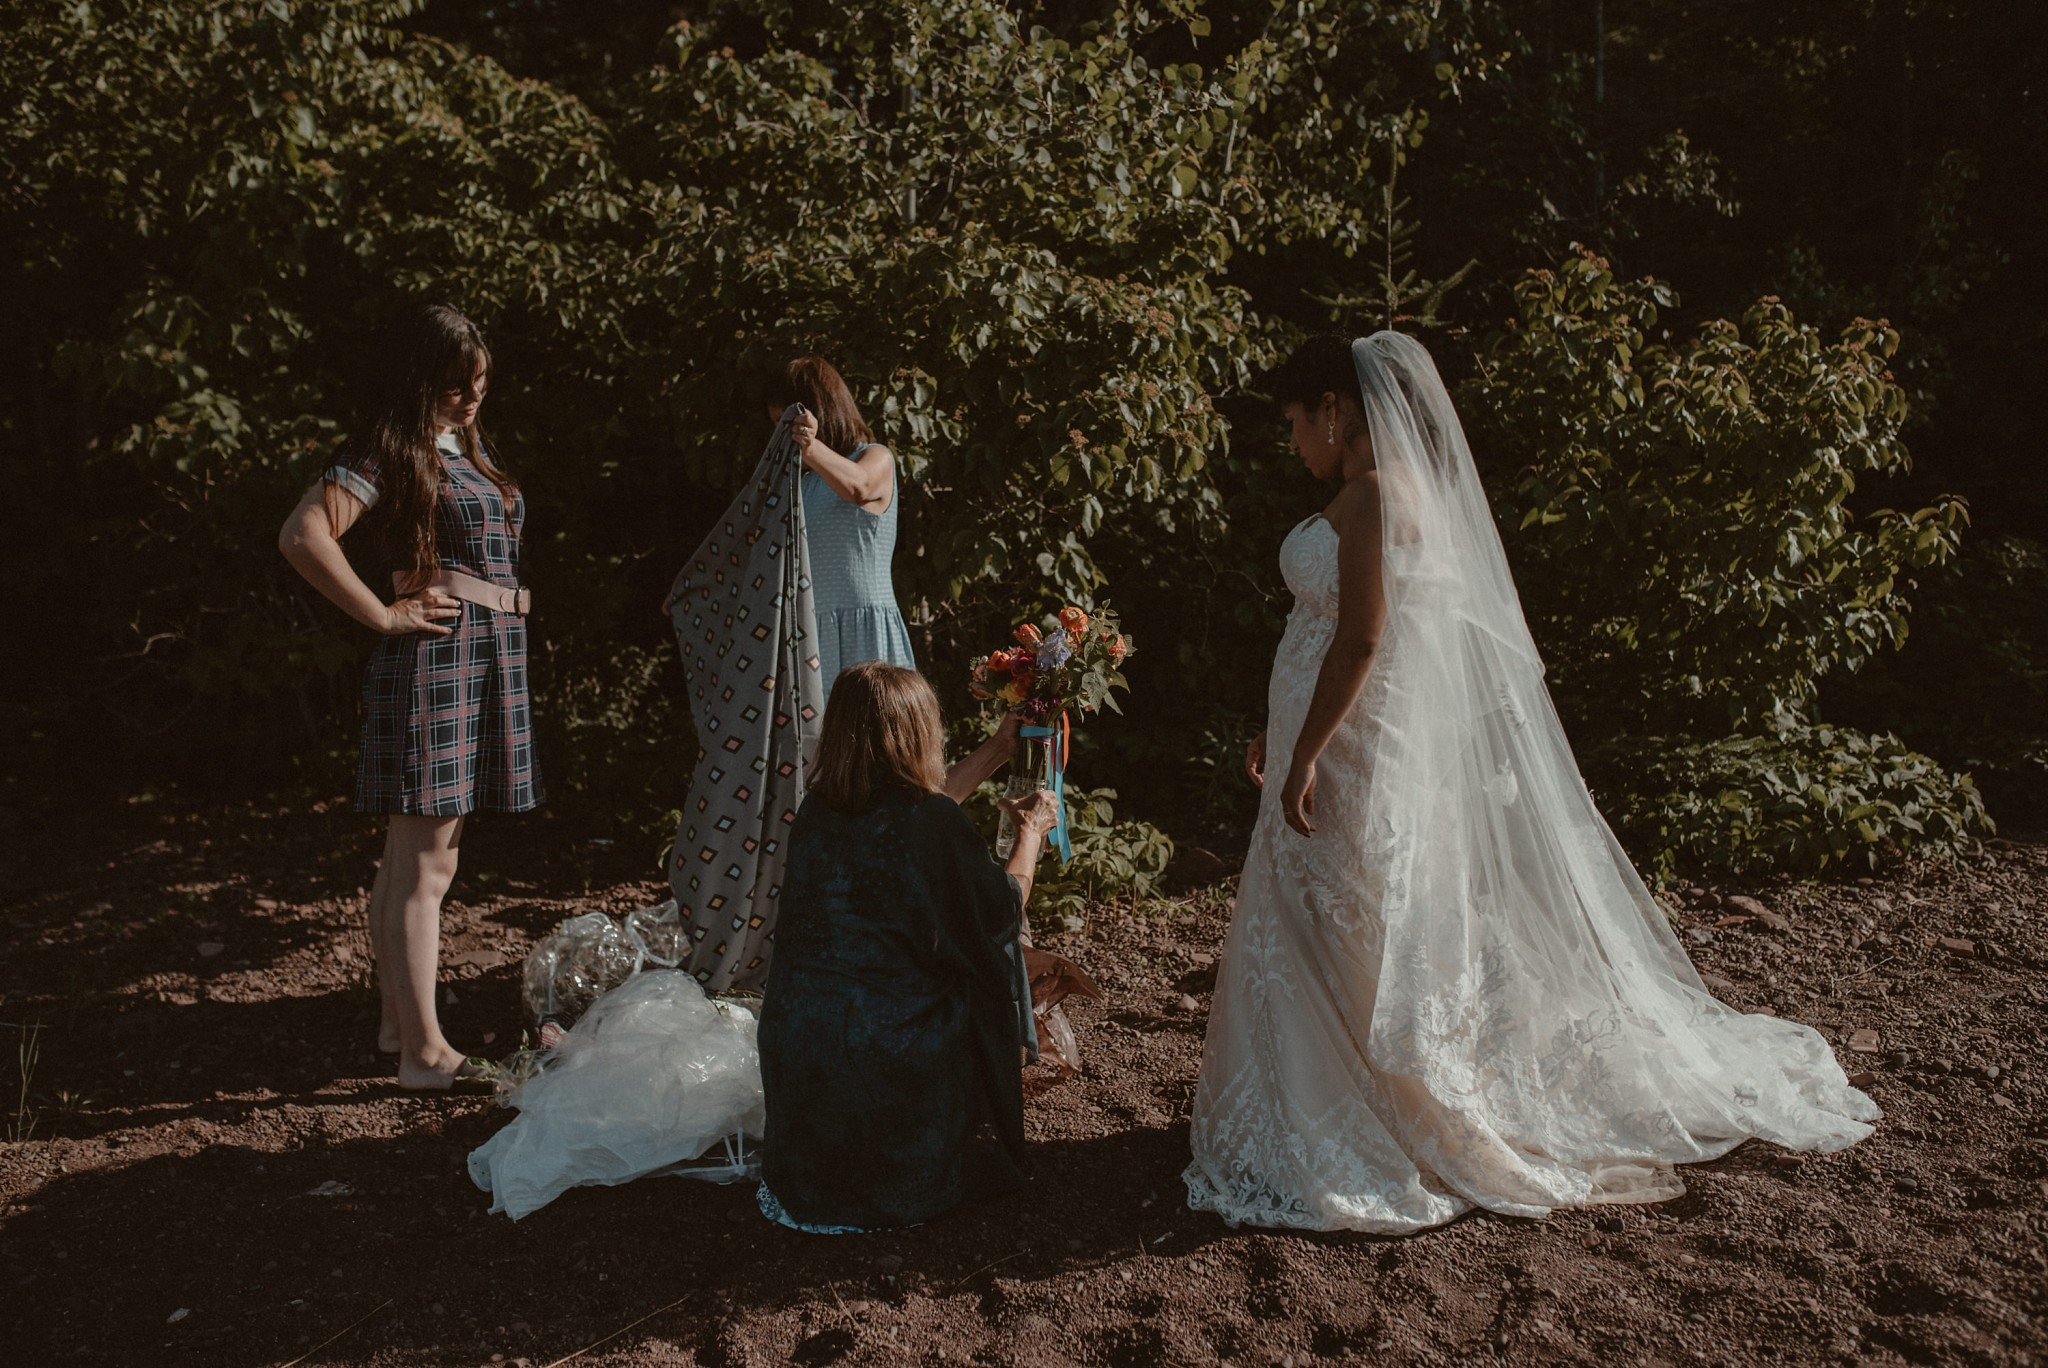 Mother offering the bride her bouquet